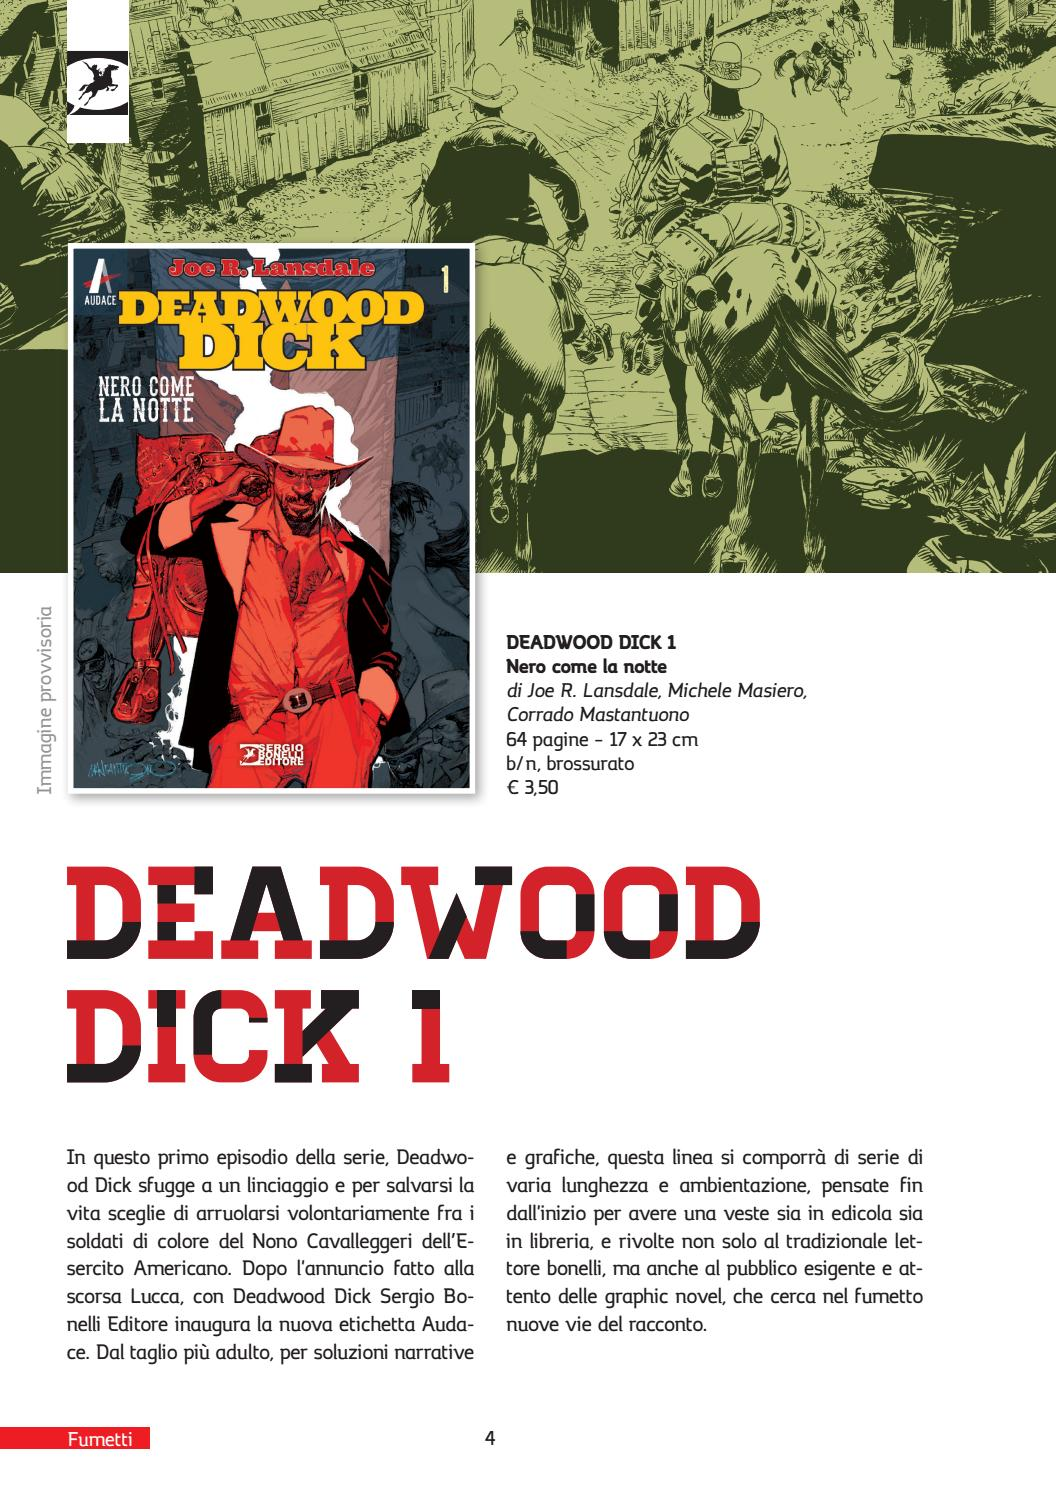 deadwood-dick